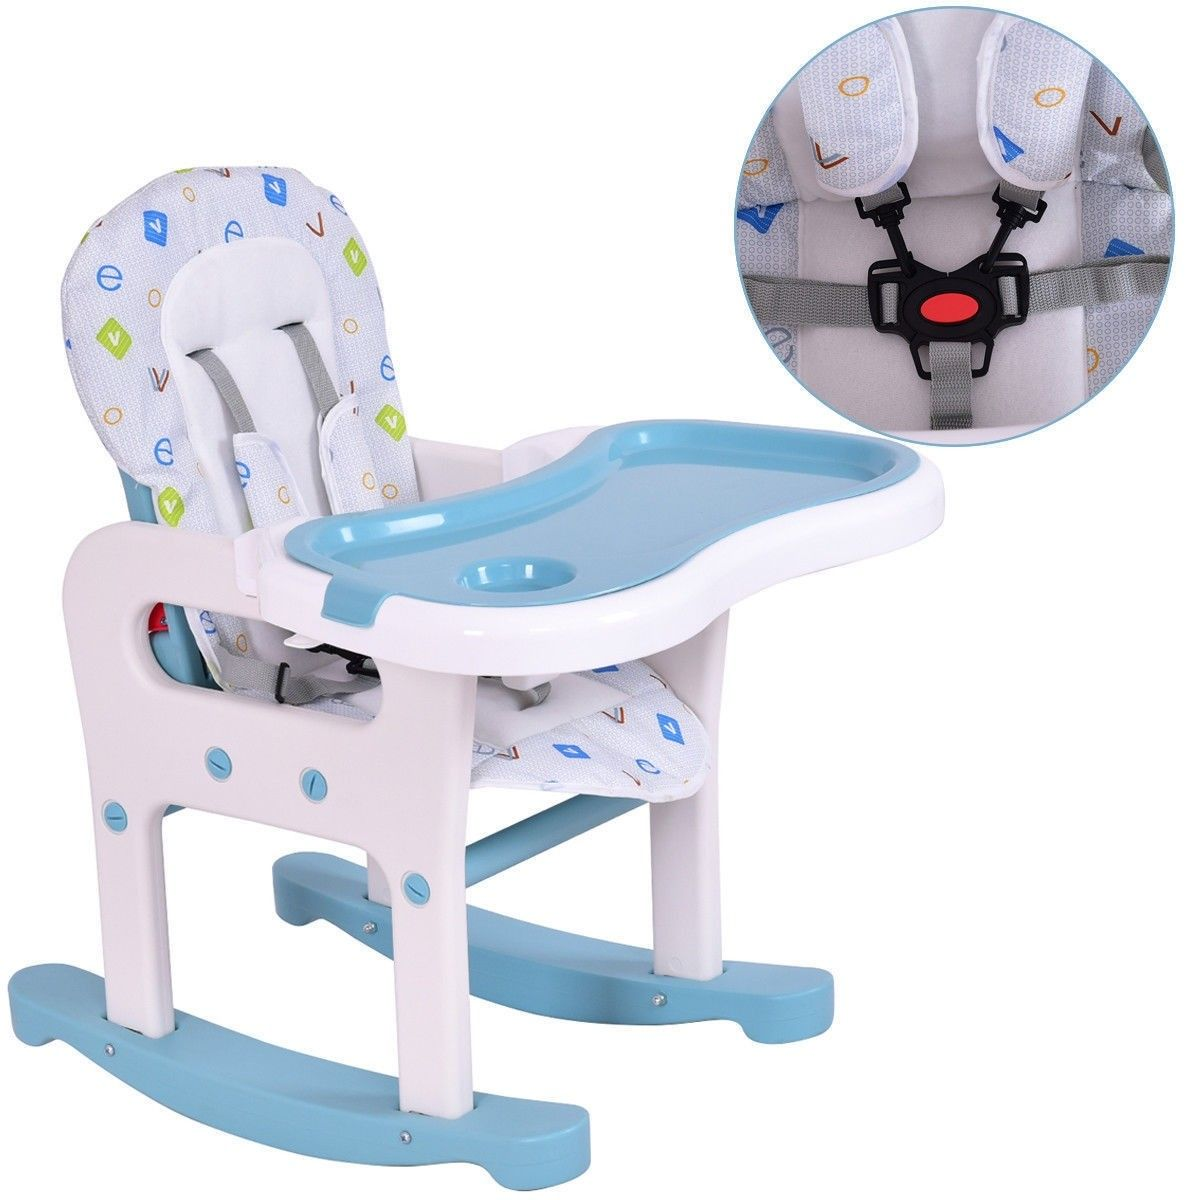 3in1 Baby High Chair Convertible Play Table (With images